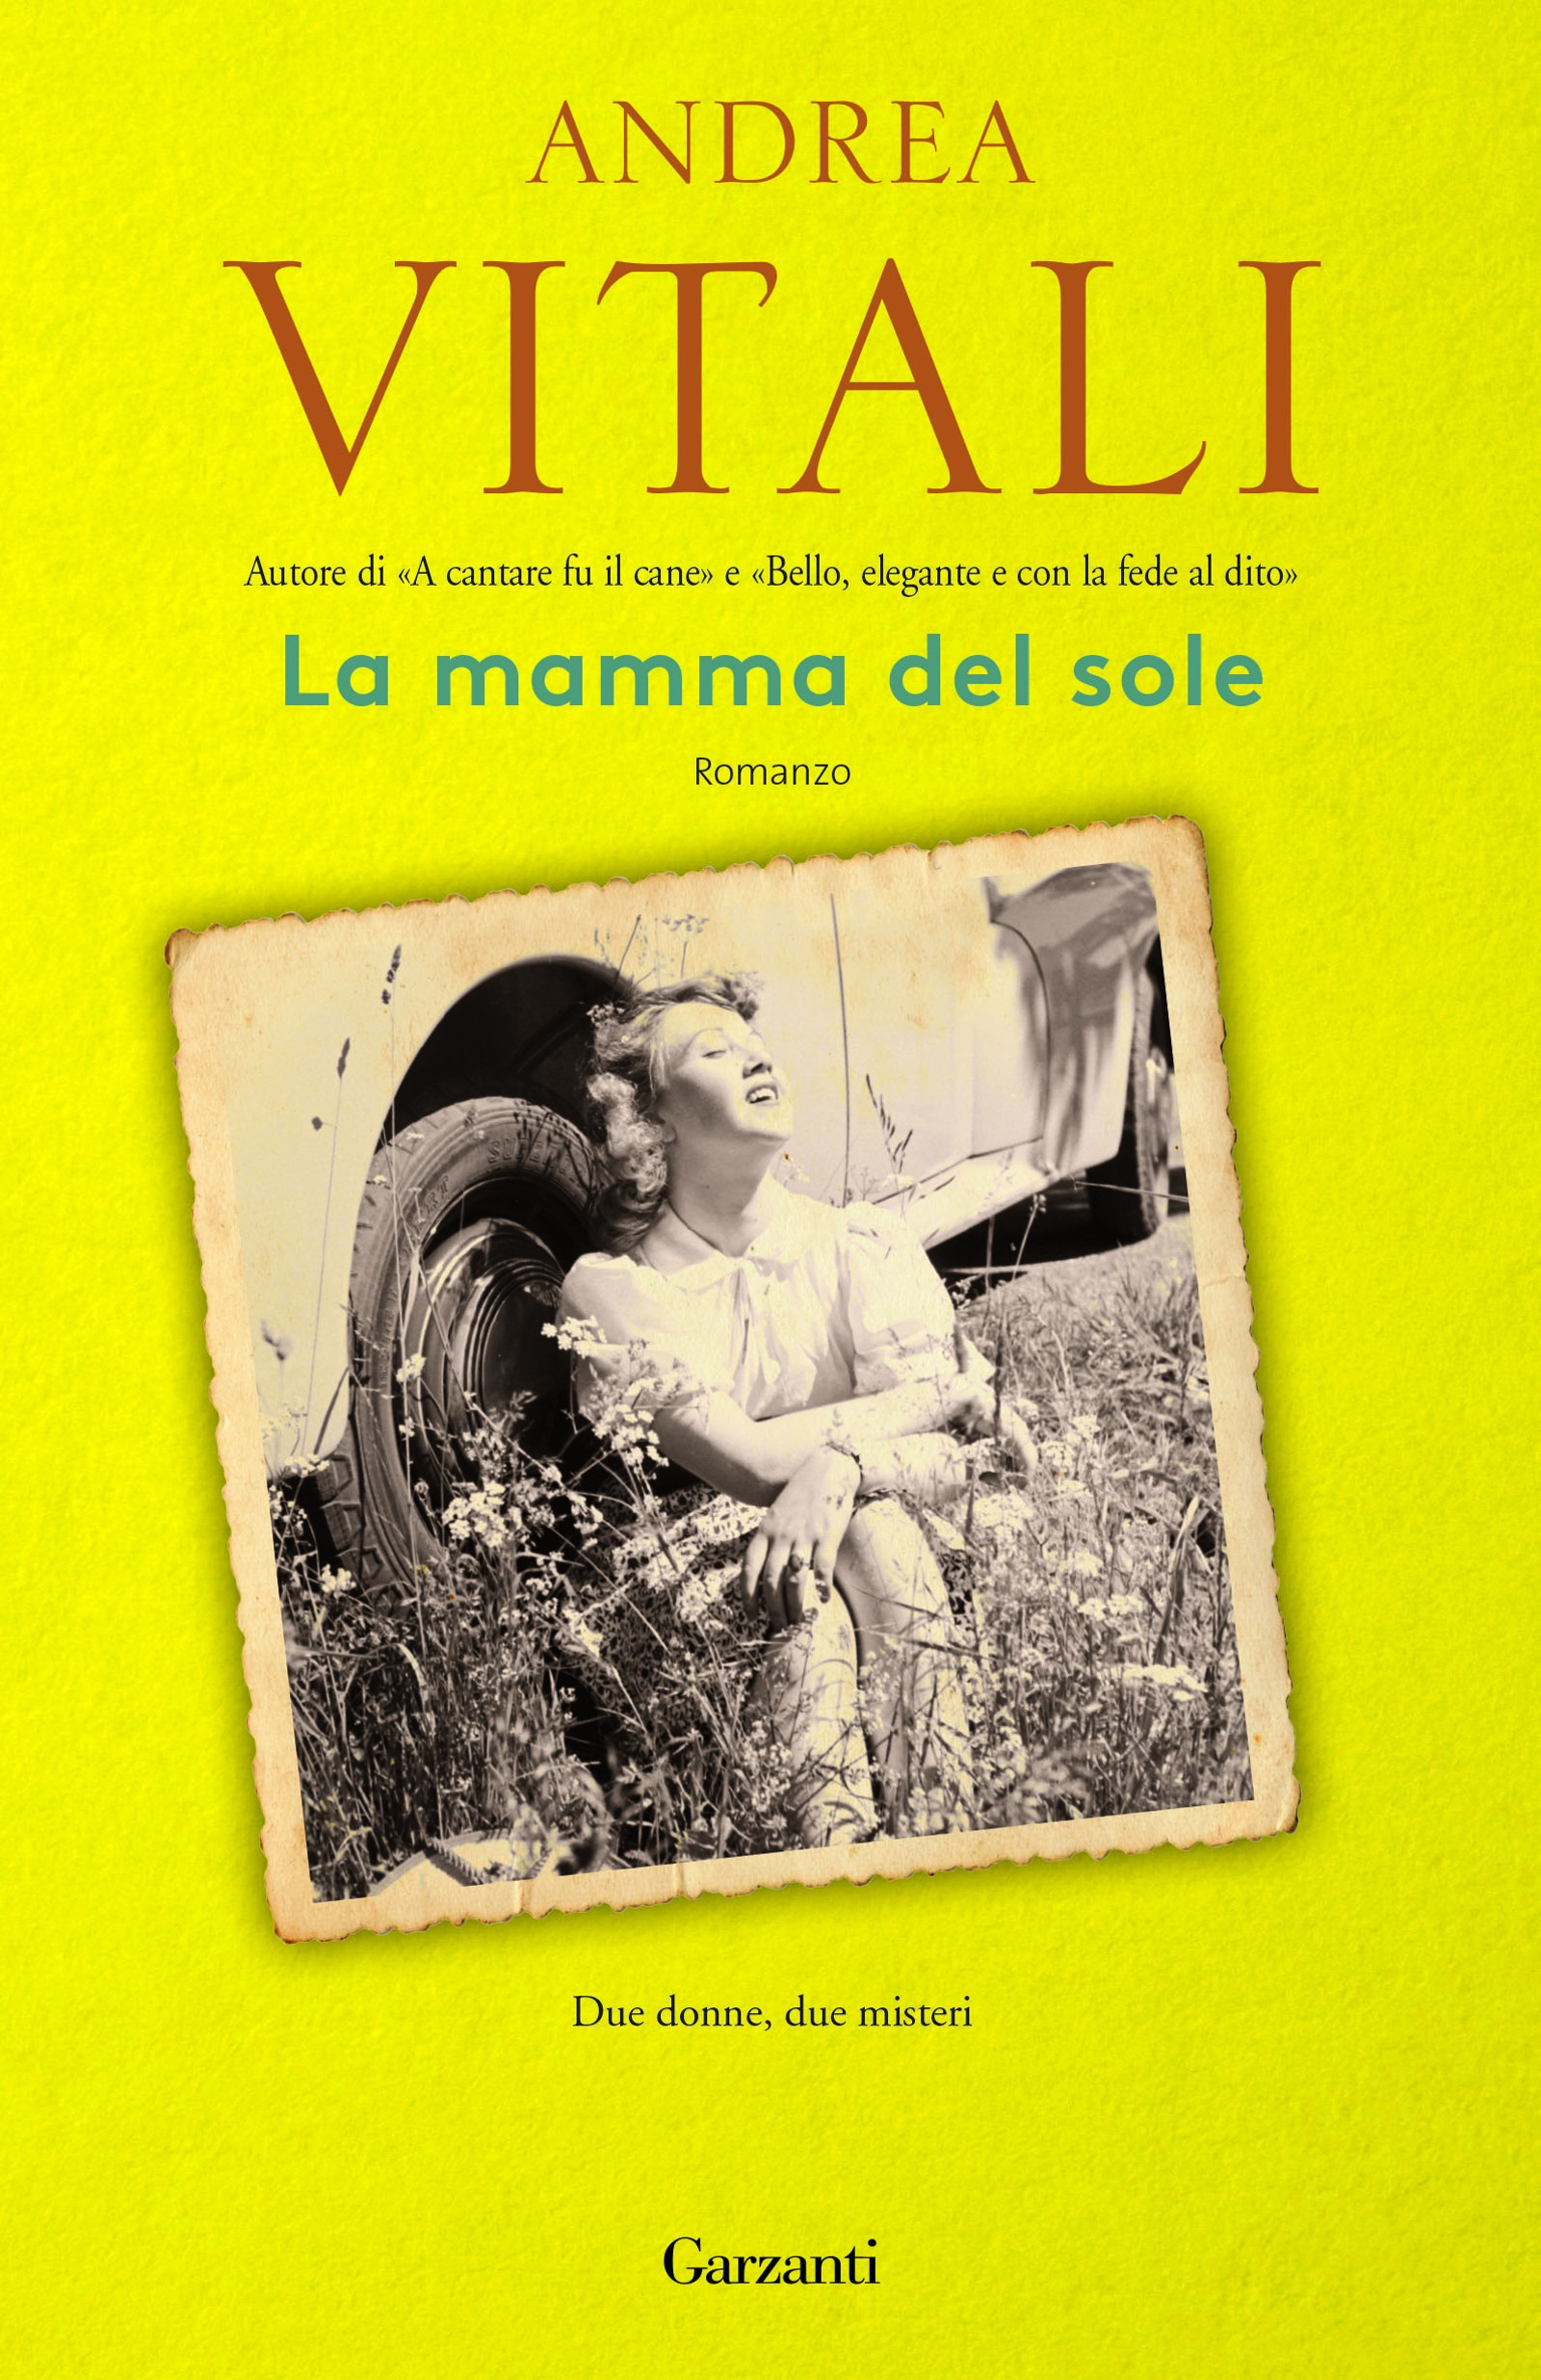 http://alessandria.bookrepublic.it/api/books/9788811130536/cover